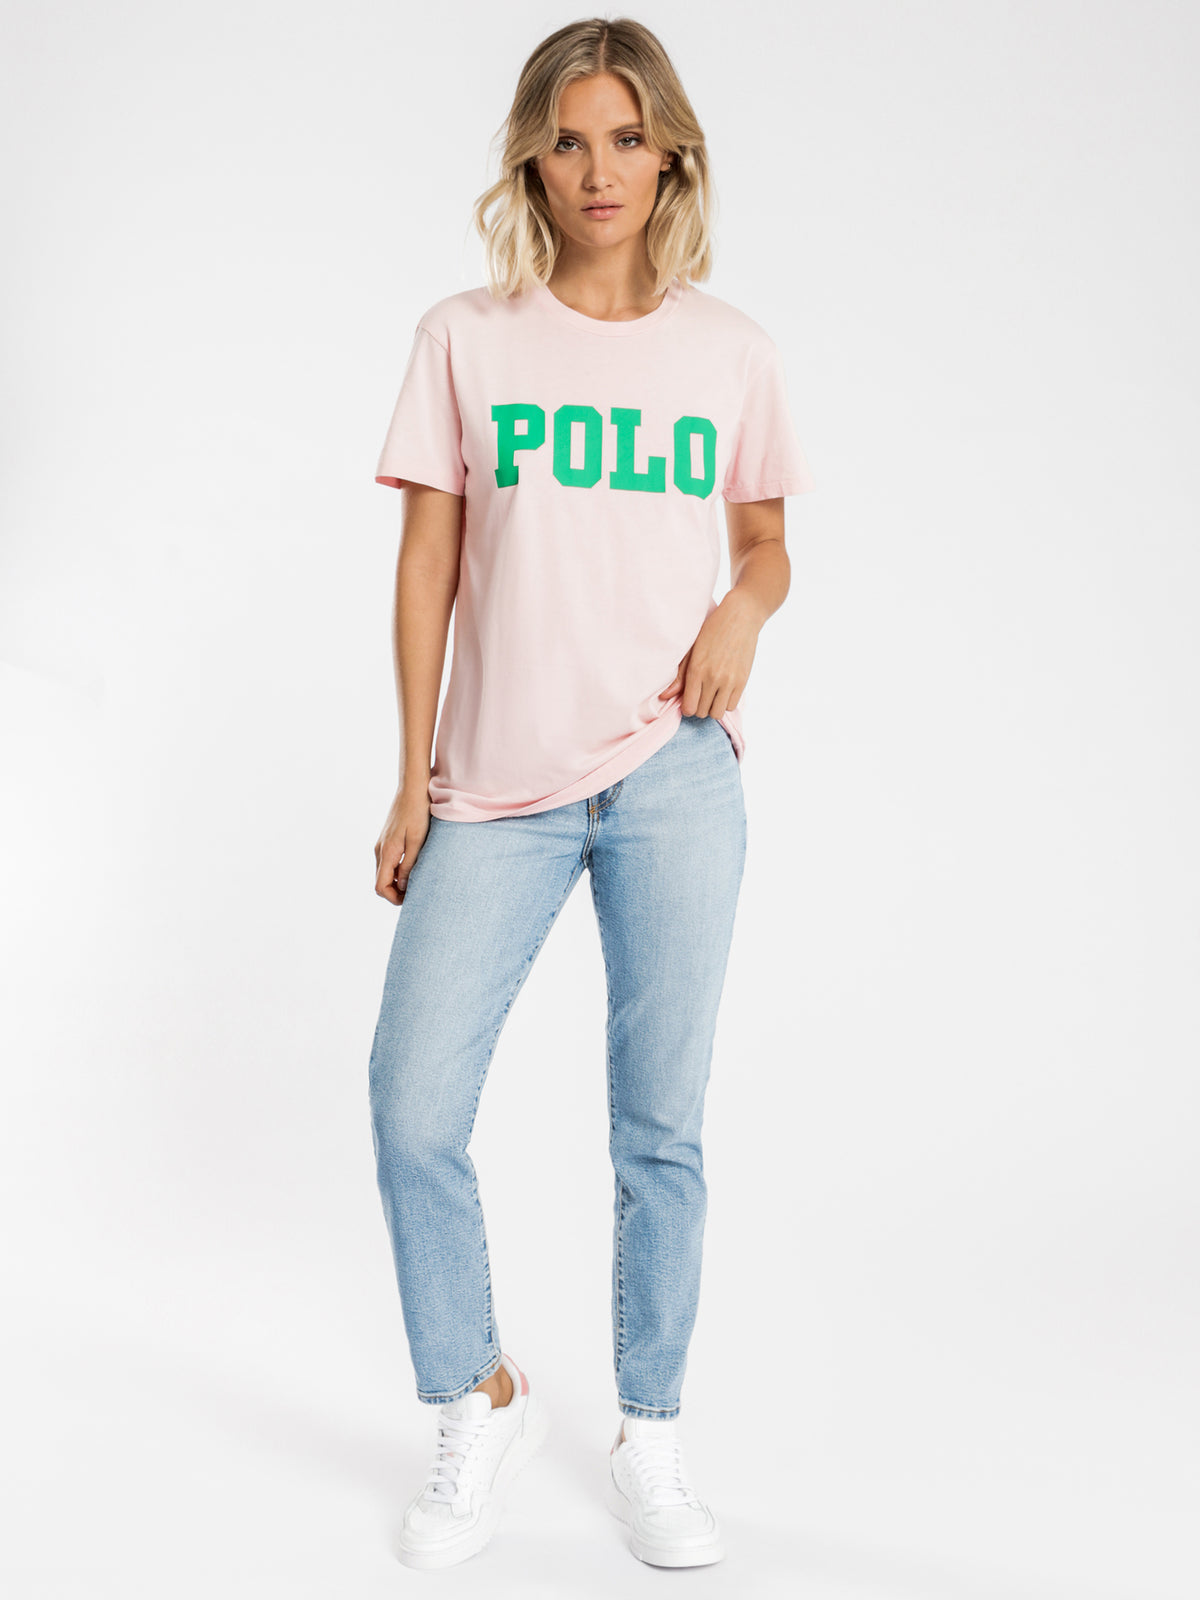 Big Polo Logo T-Shirt in Pink Sand